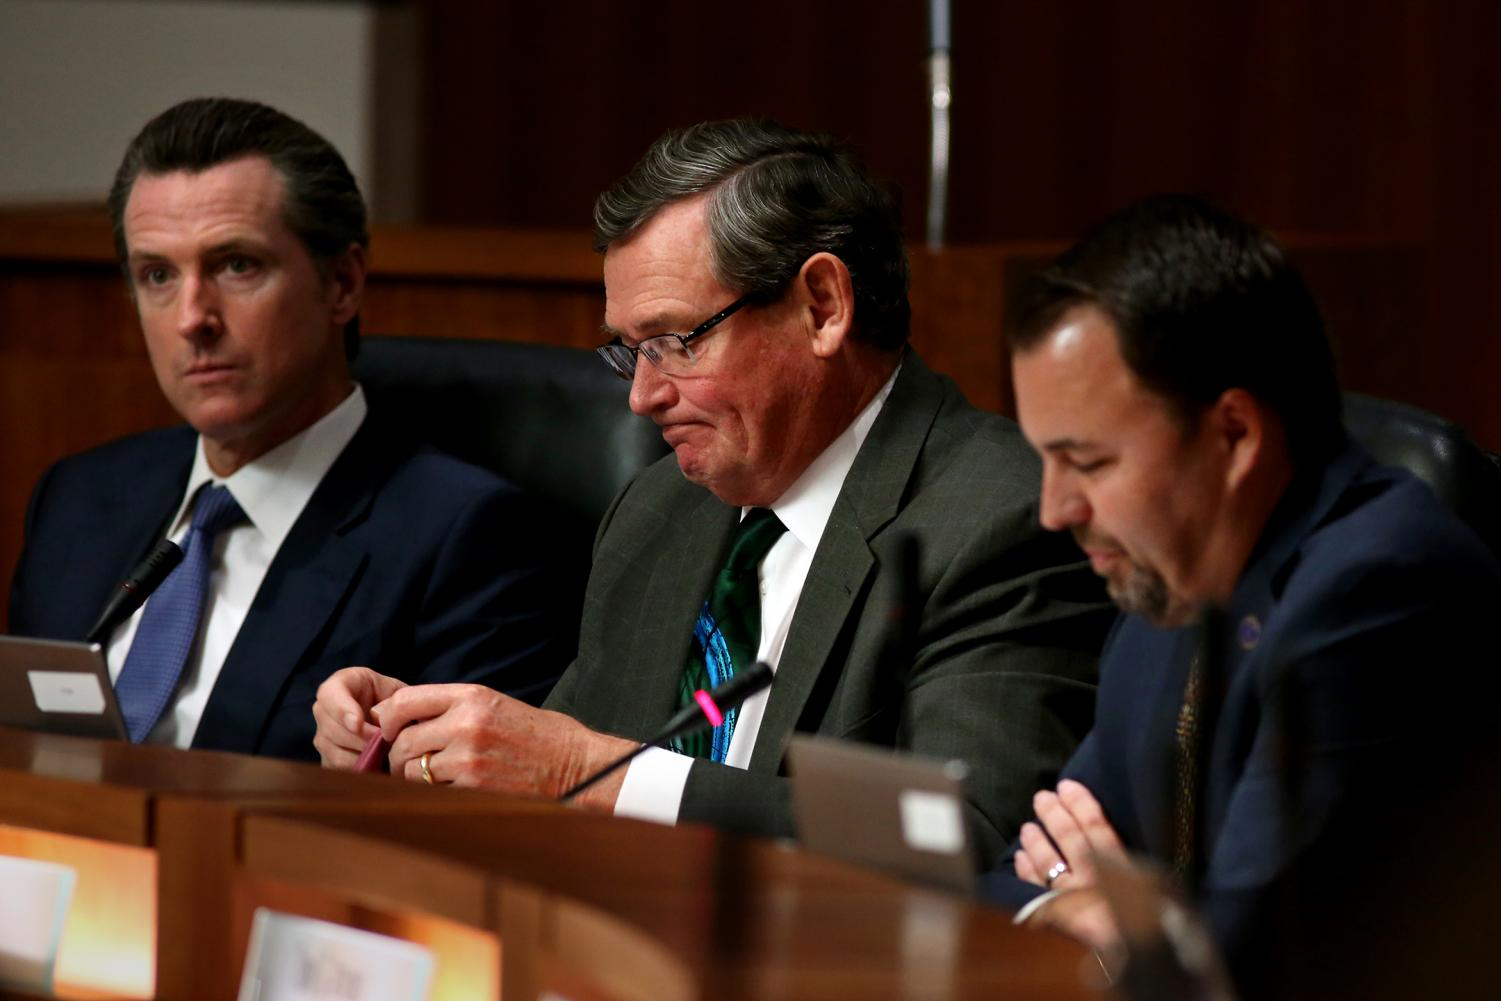 CSU Chancellor, Timothy P White, at the California State University Board of Trustees meeting in 2015.